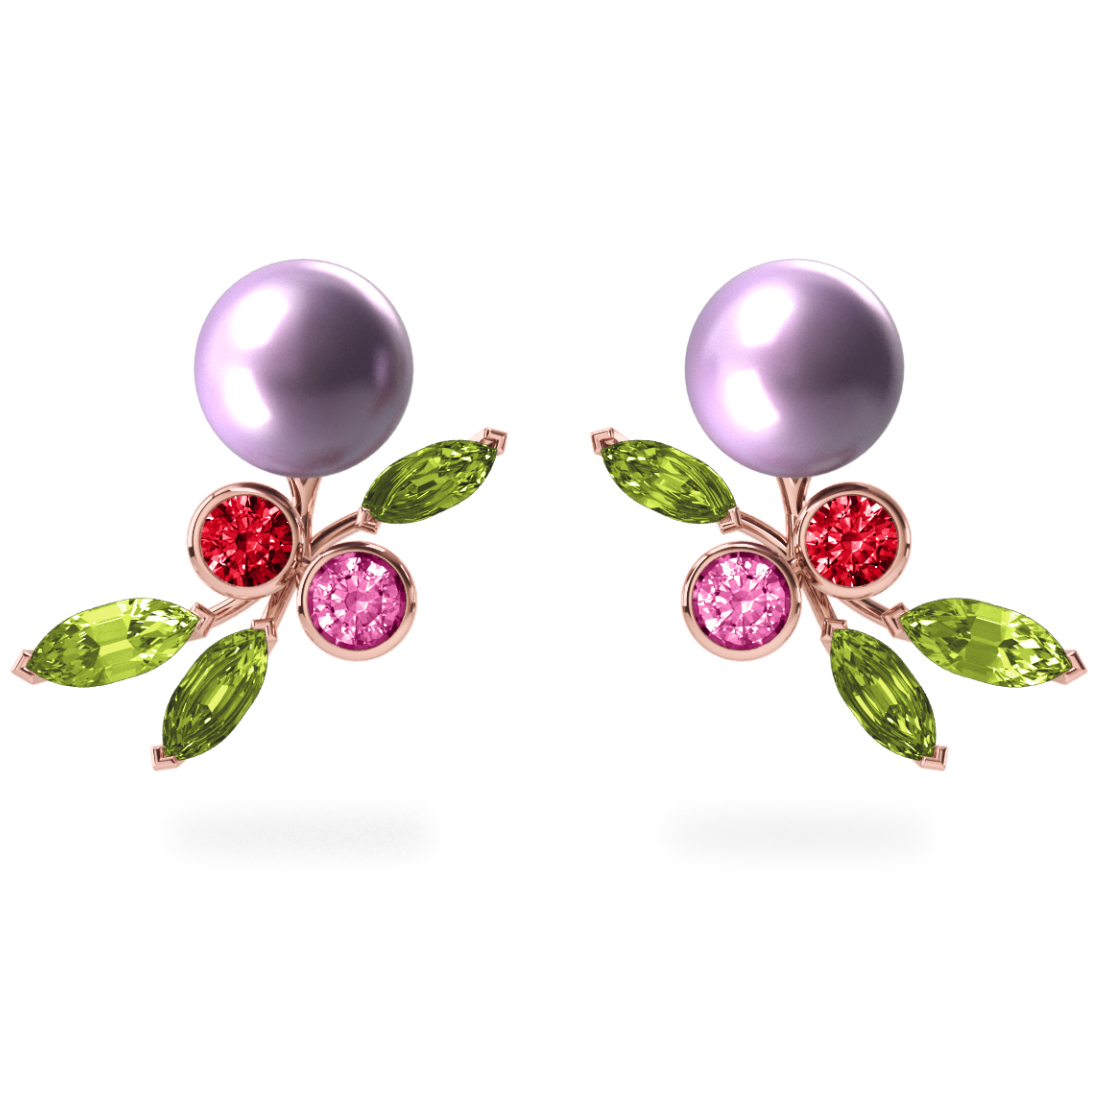 Boucles d'oreilles My Angel Mauve - Saphirs, diamants, peridots & perles d'eau douce <br /> Or blanc 18 carats